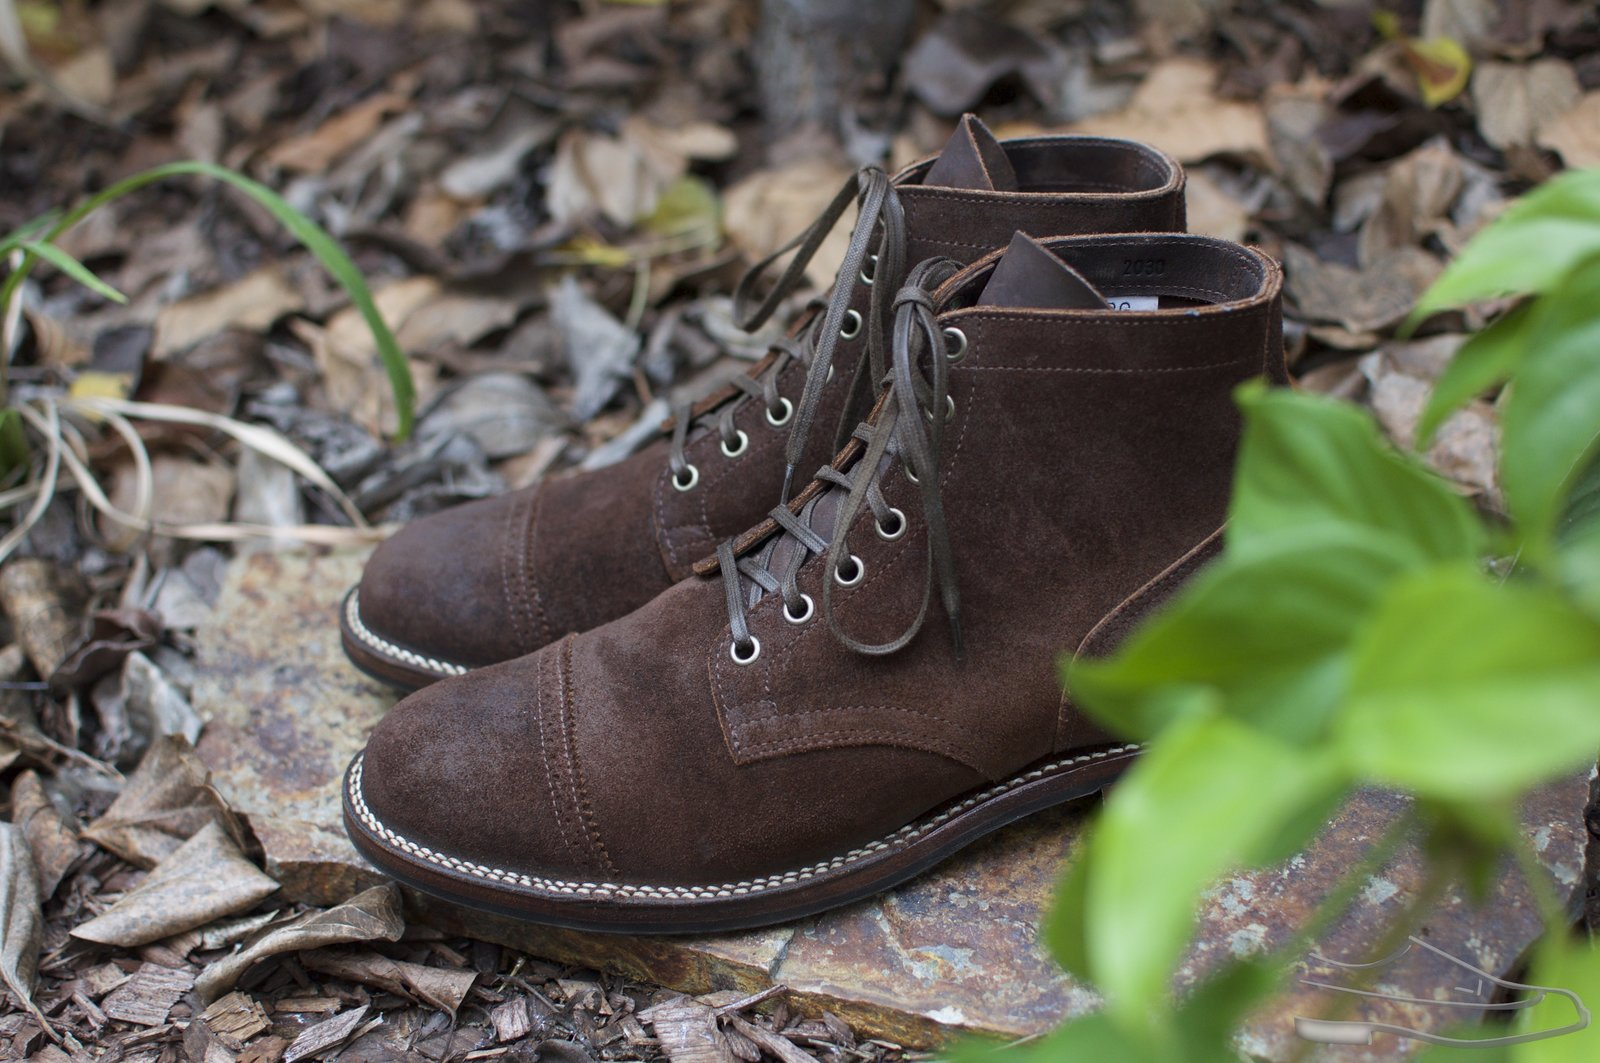 Viberg Tabacco Reverse Chamois Service Boots - 2020-10-23 - 2.jpg